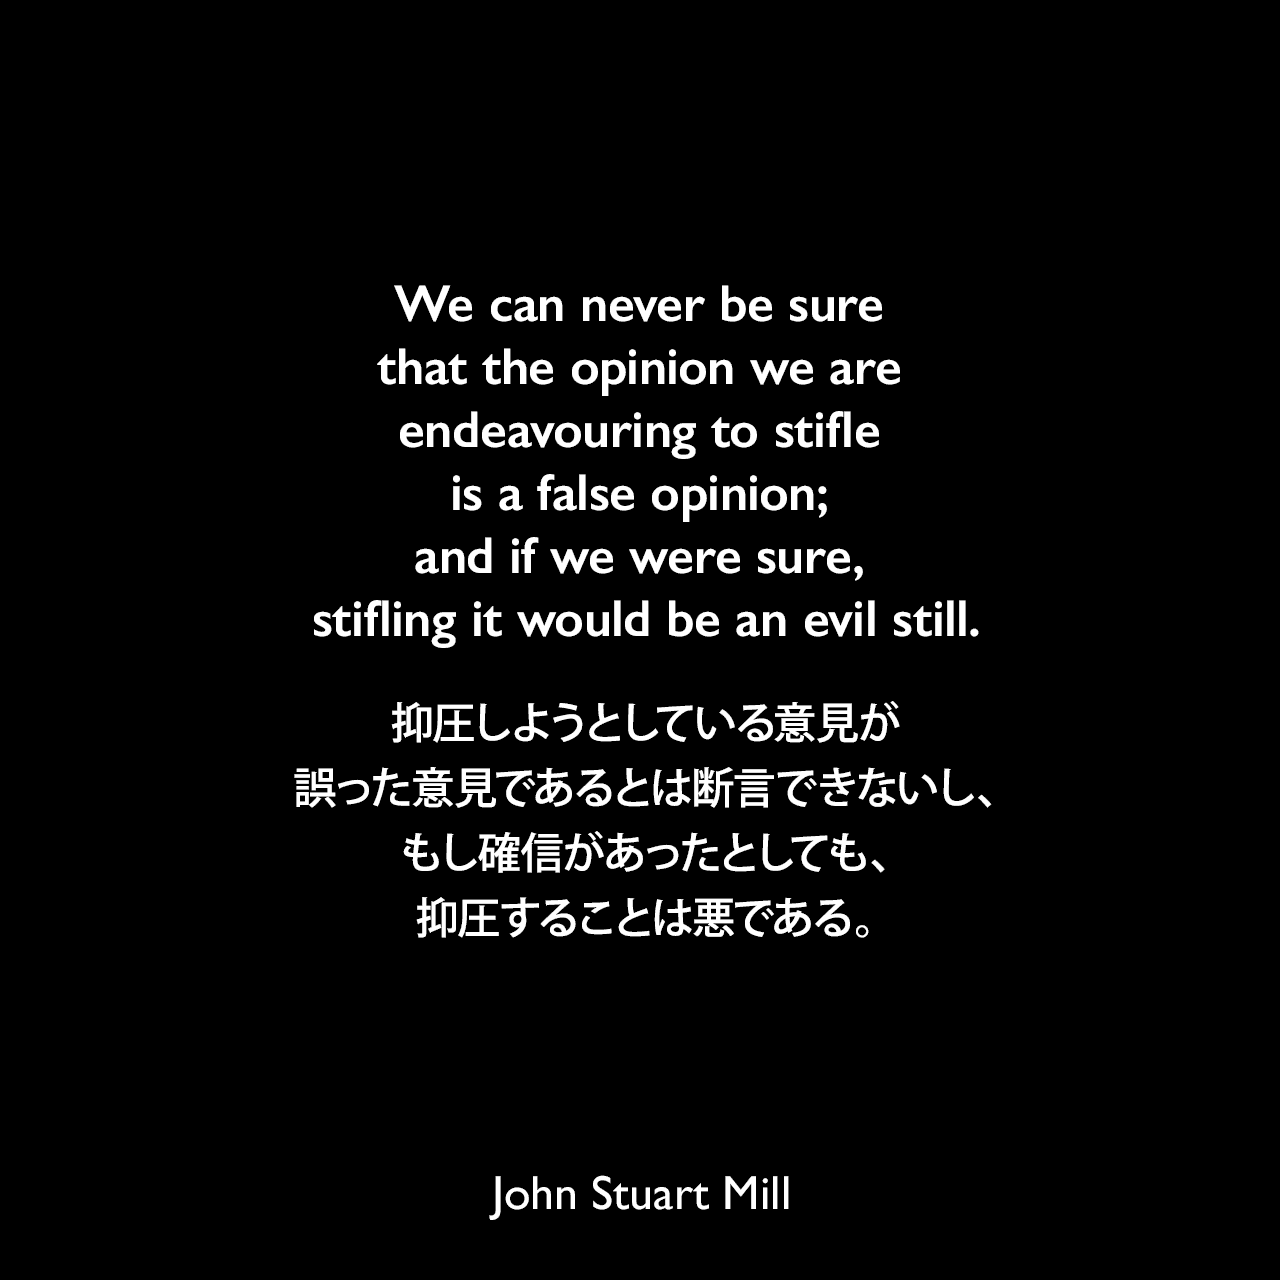 We can never be sure that the opinion we are endeavouring to stifle is a false opinion; and if we were sure, stifling it would be an evil still.抑圧しようとしている意見が誤った意見であるとは断言できないし、もし確信があったとしても、抑圧することは悪である。- ジョン・スチュアート・ミルによる本「自由論」よりJohn Stuart Mill